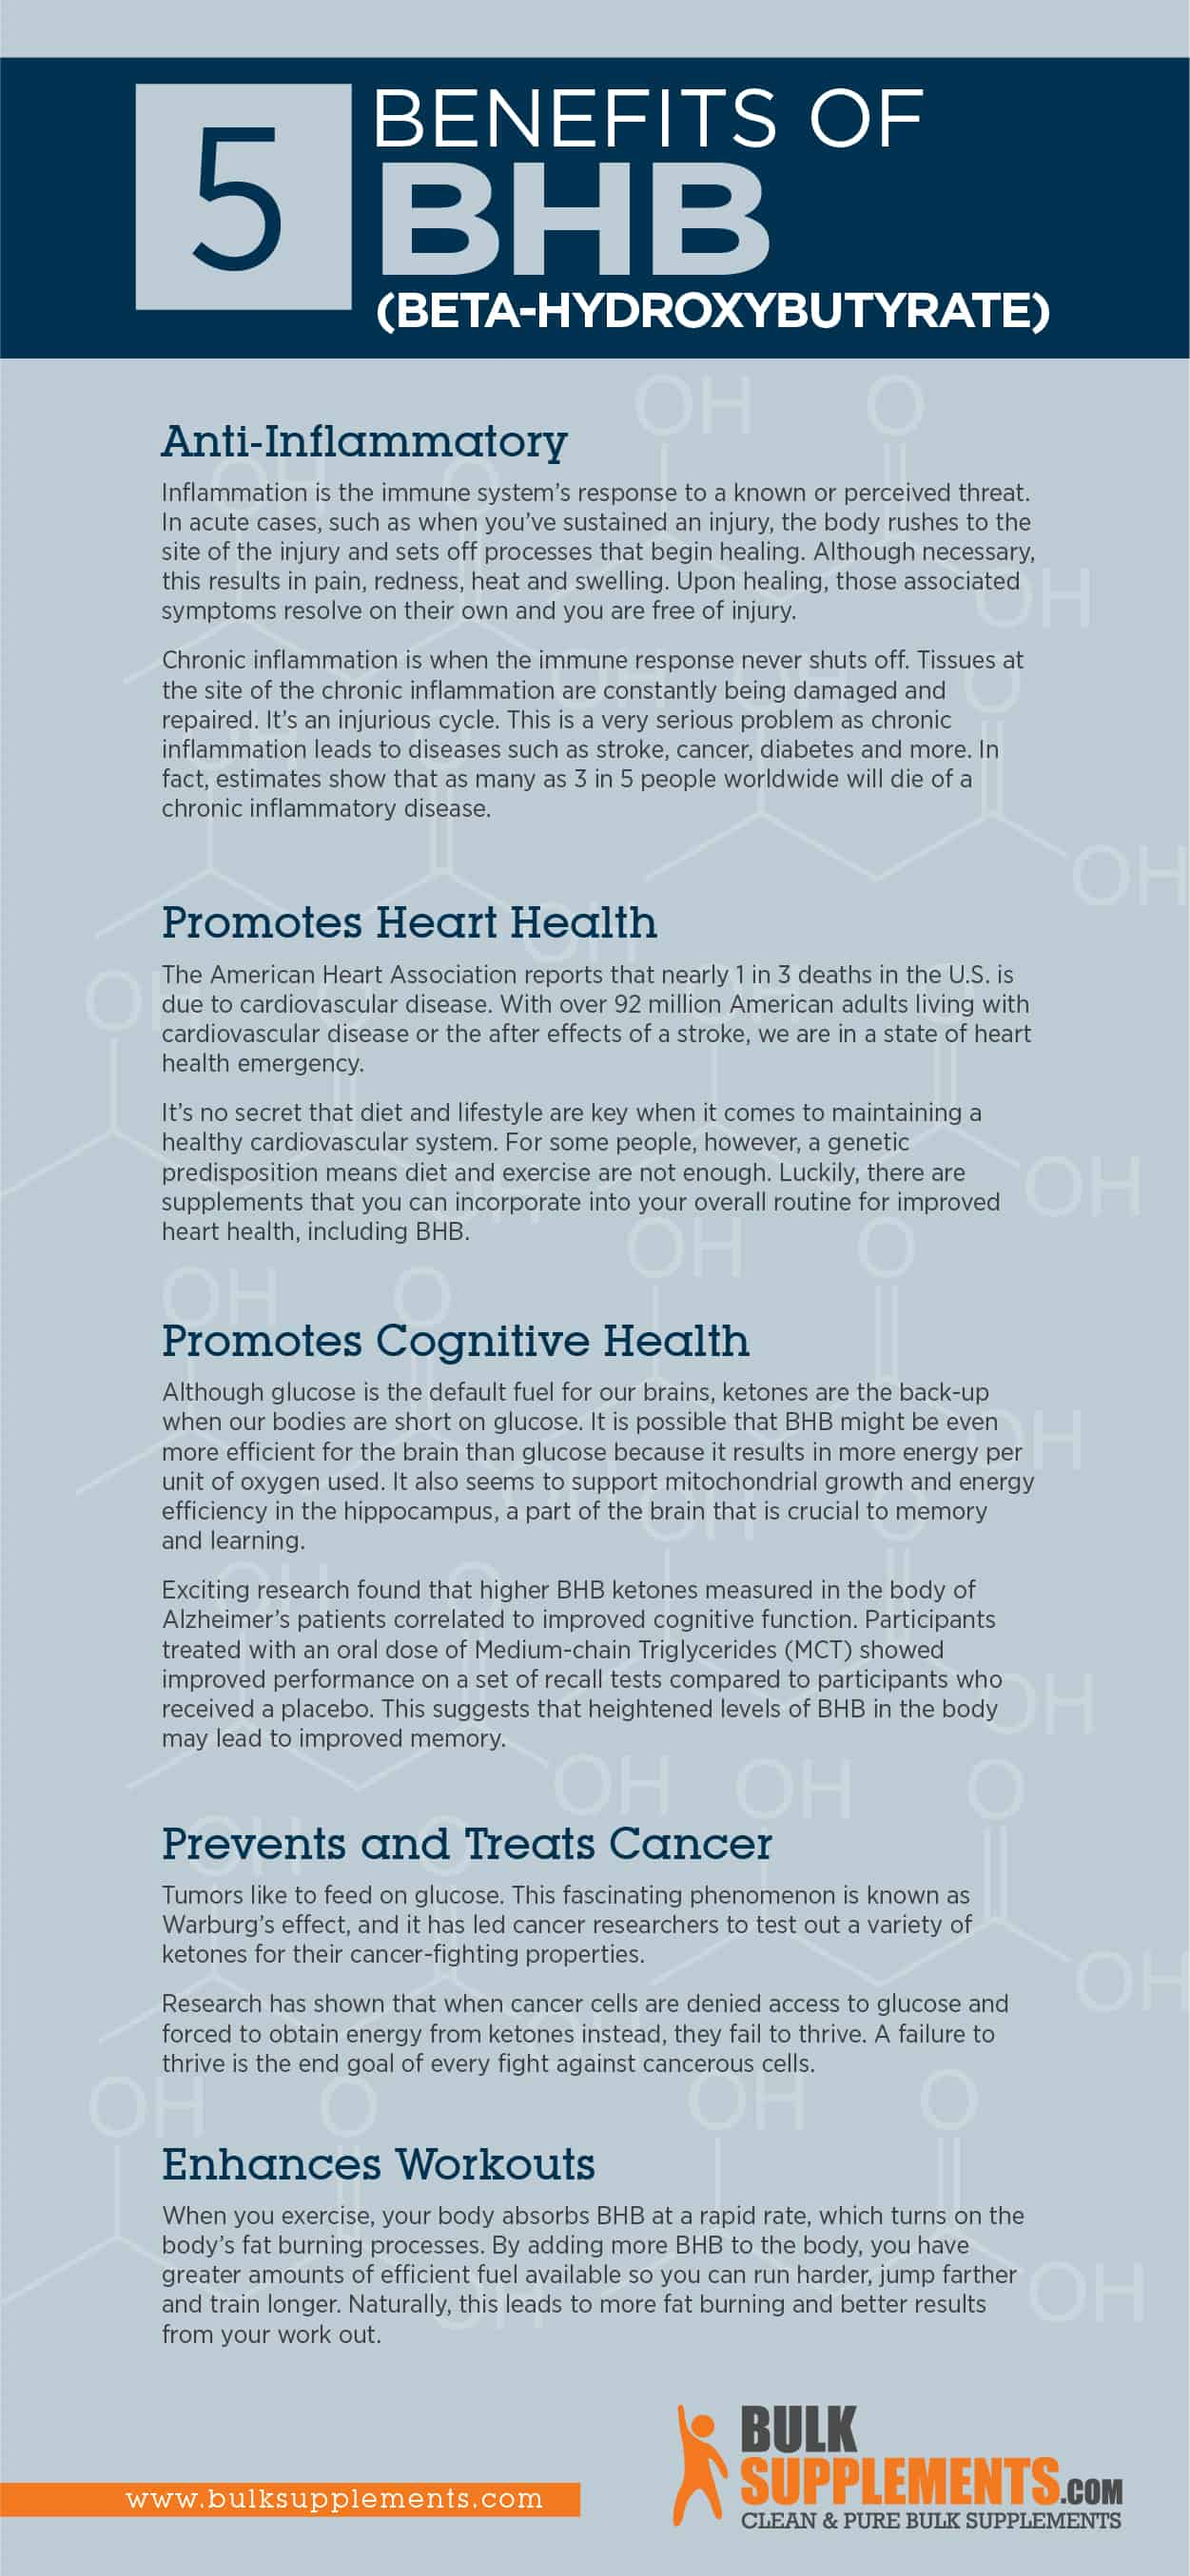 BHB Benefits